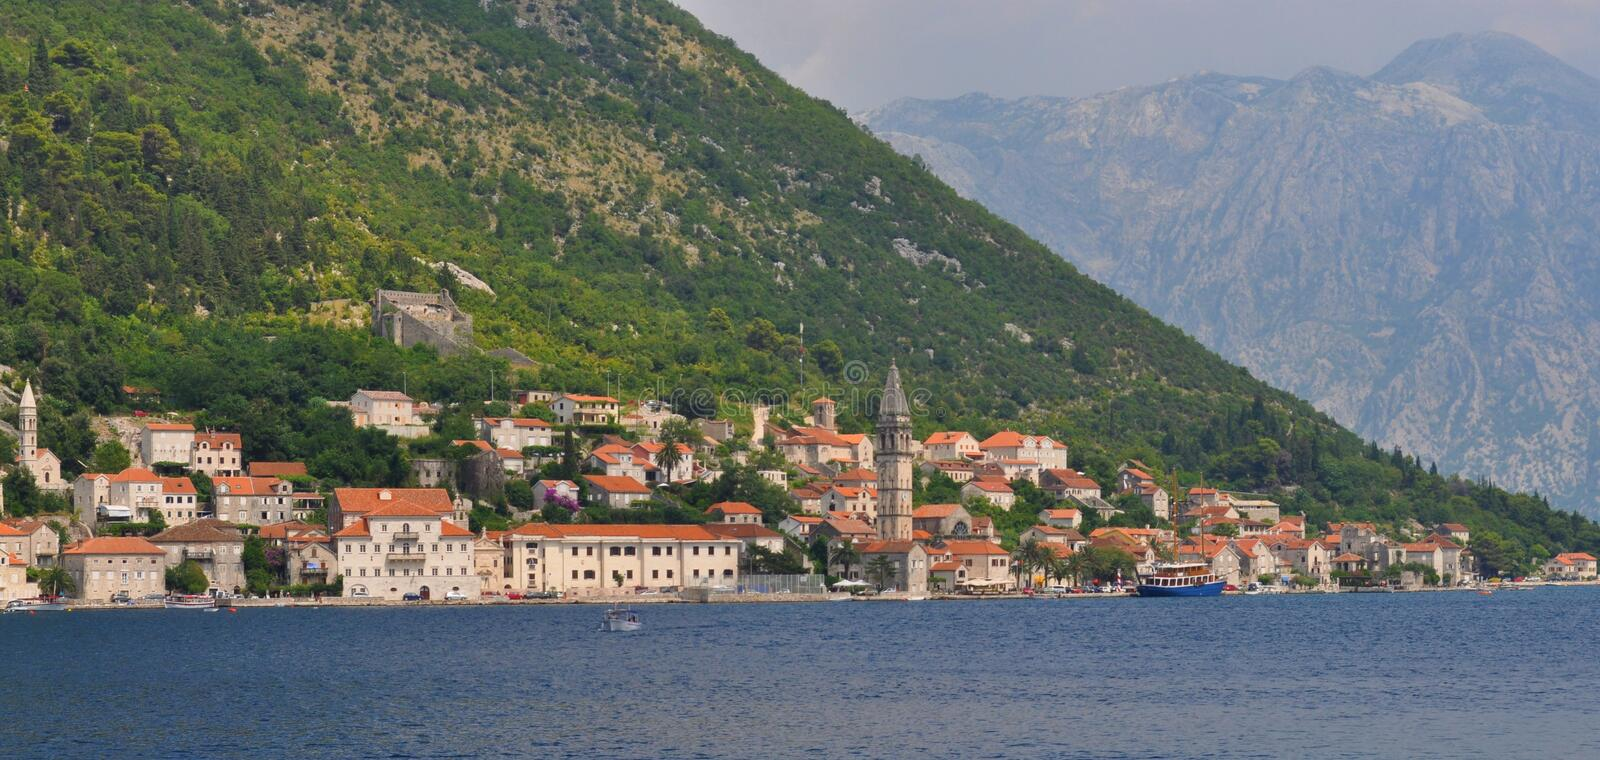 The old city of Perast stock image